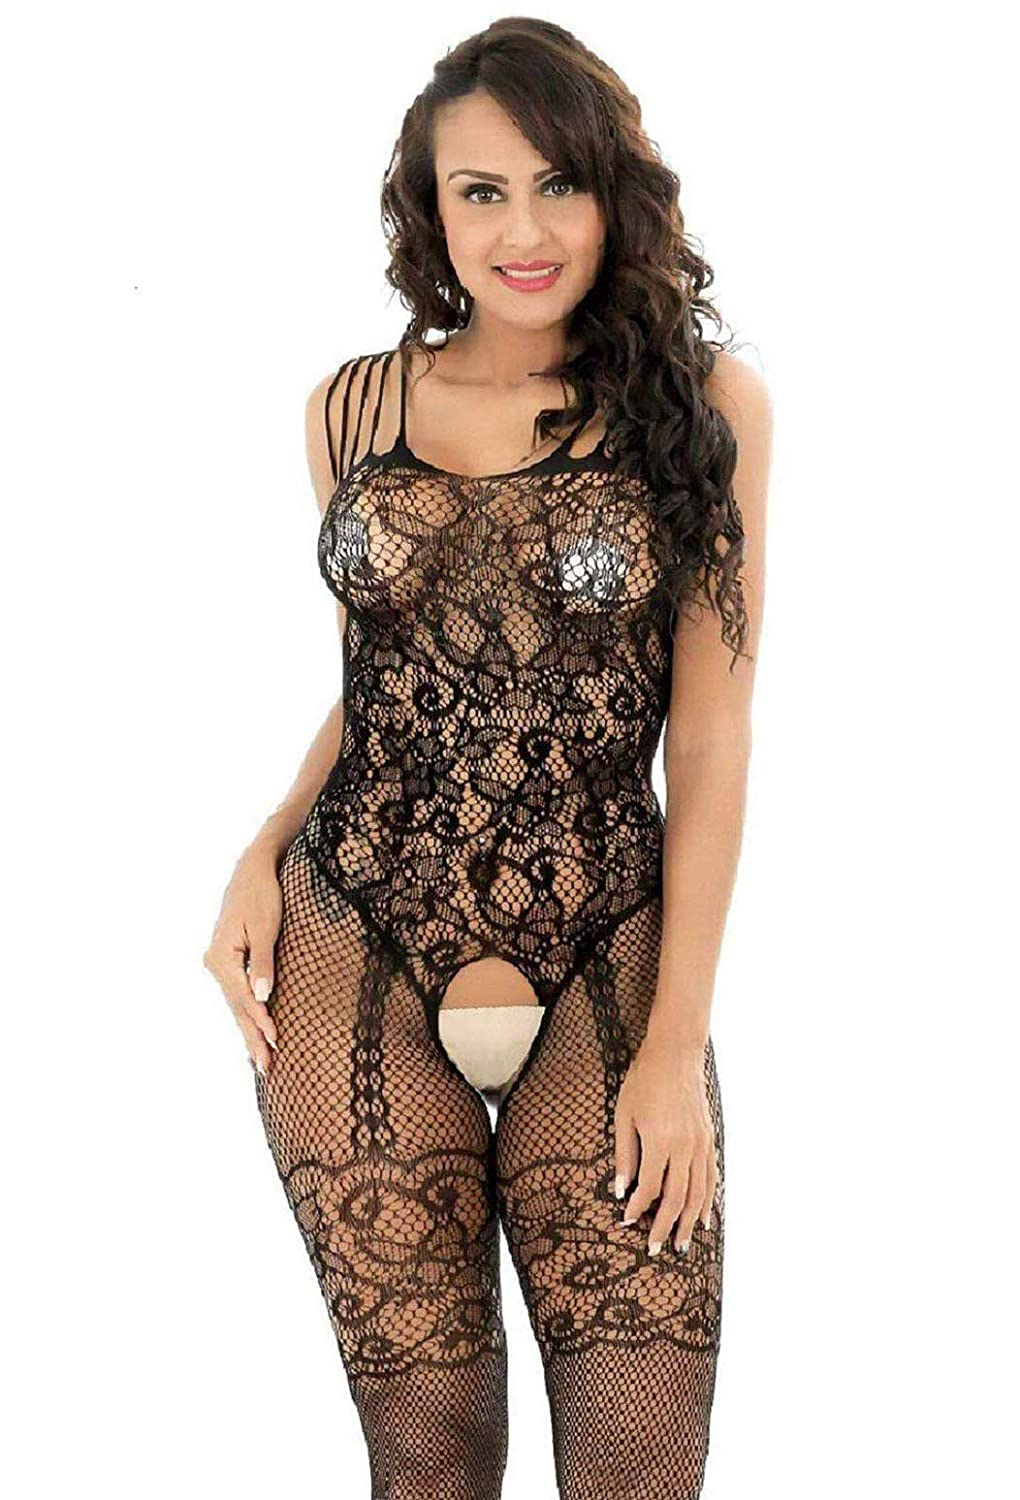 714825e1f73 Amazon.com  EVAbaby Sexy Fishnet Crotchless Bodystocking Lingerie for Women  Sheer Babydoll Teddy Nightie Leotard Body Suit Stocking Black  Clothing